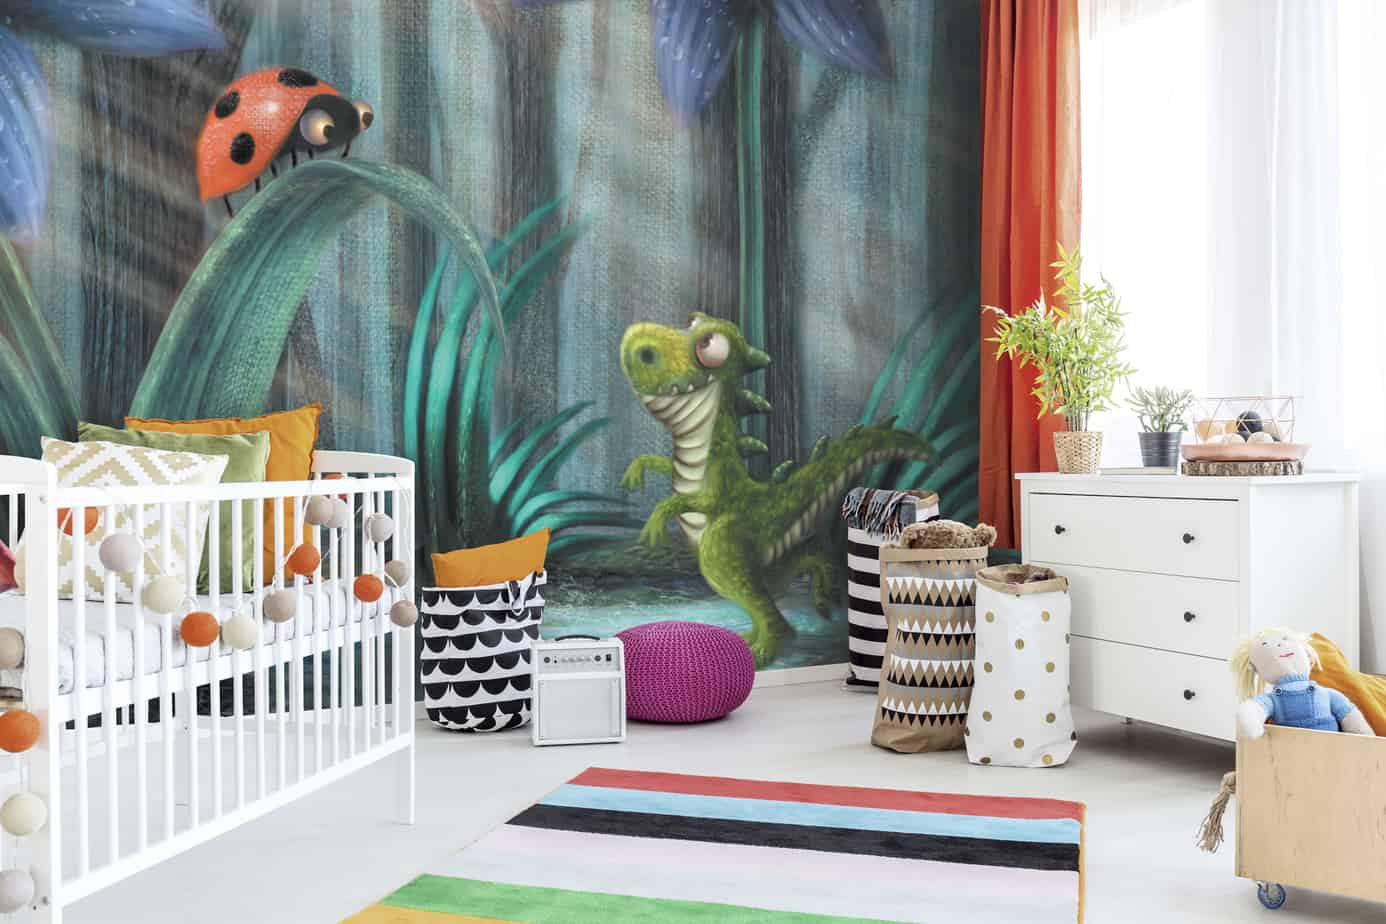 Wallsource dinosaur wall mural is an idea for bedroom makeovers for kids